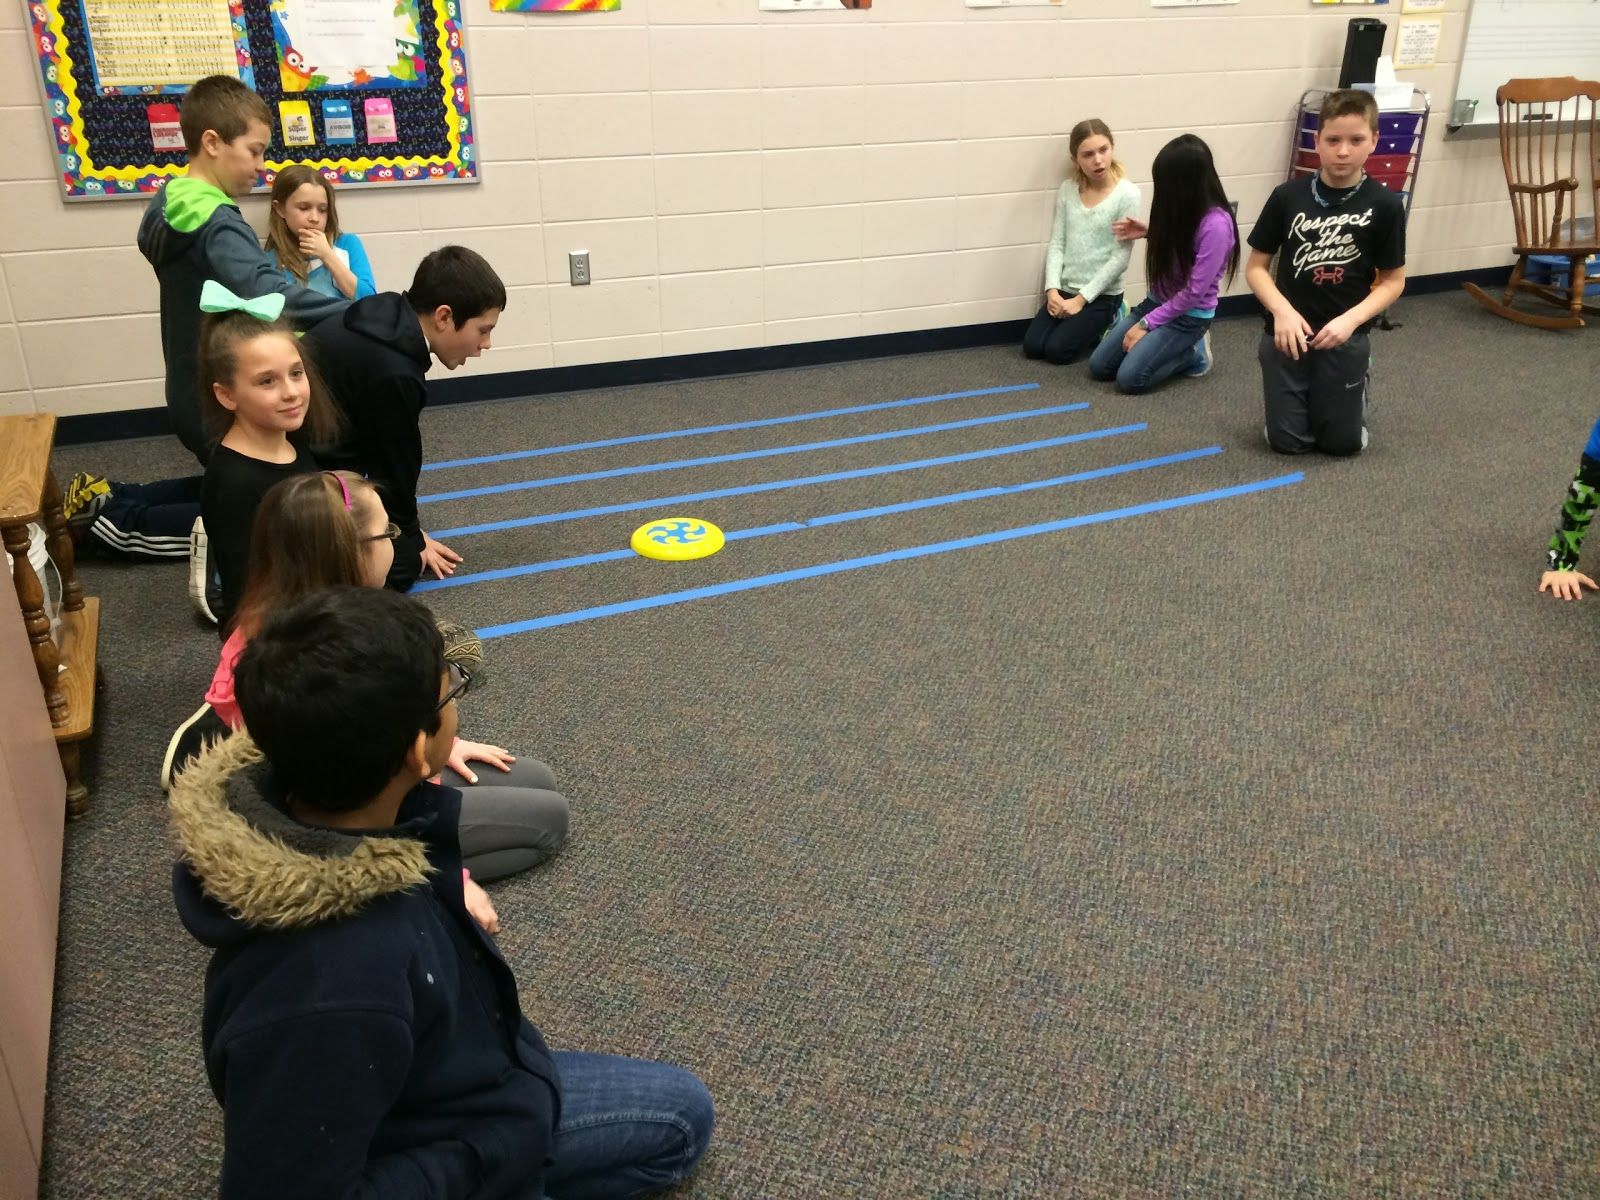 The Journey Of An Elementary Music Teacher Fun With Boomwhackers And Treble Clef Frisbee